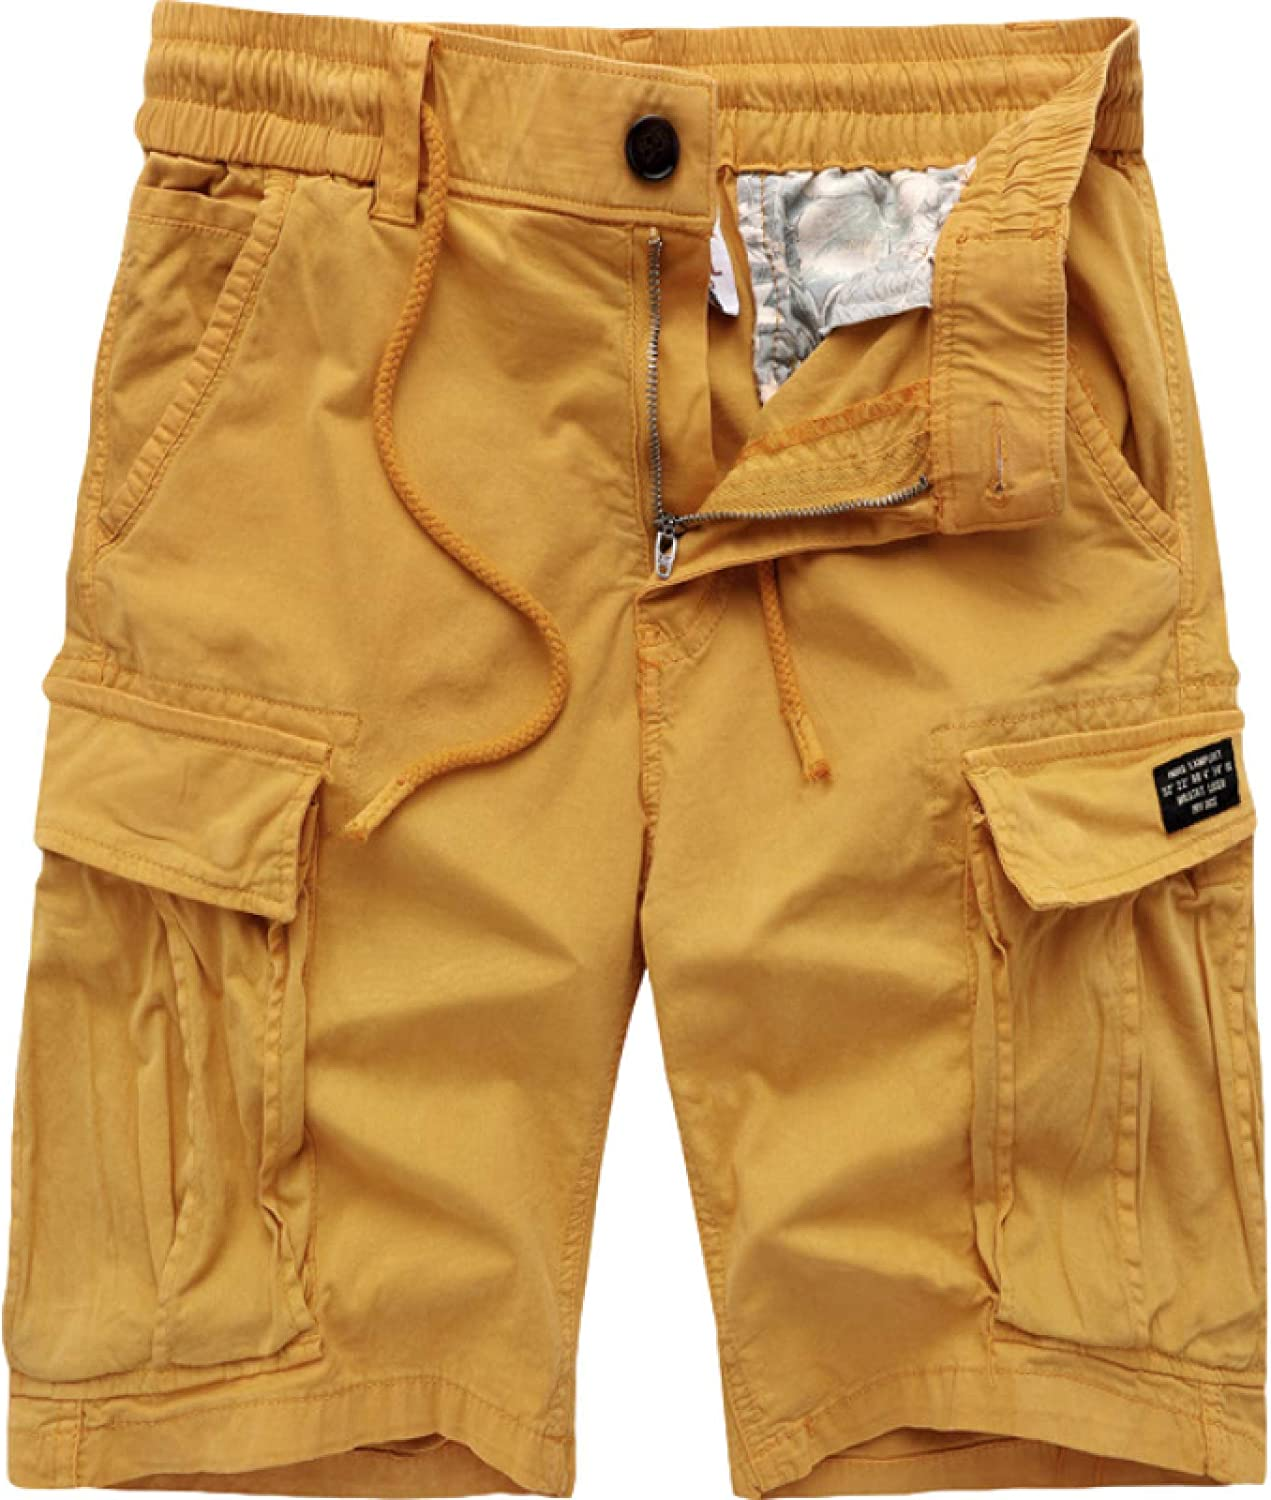 Katenyl Men's Sports Shorts Fashion Trend Stitching Multi-Pocket Loose Solid Color